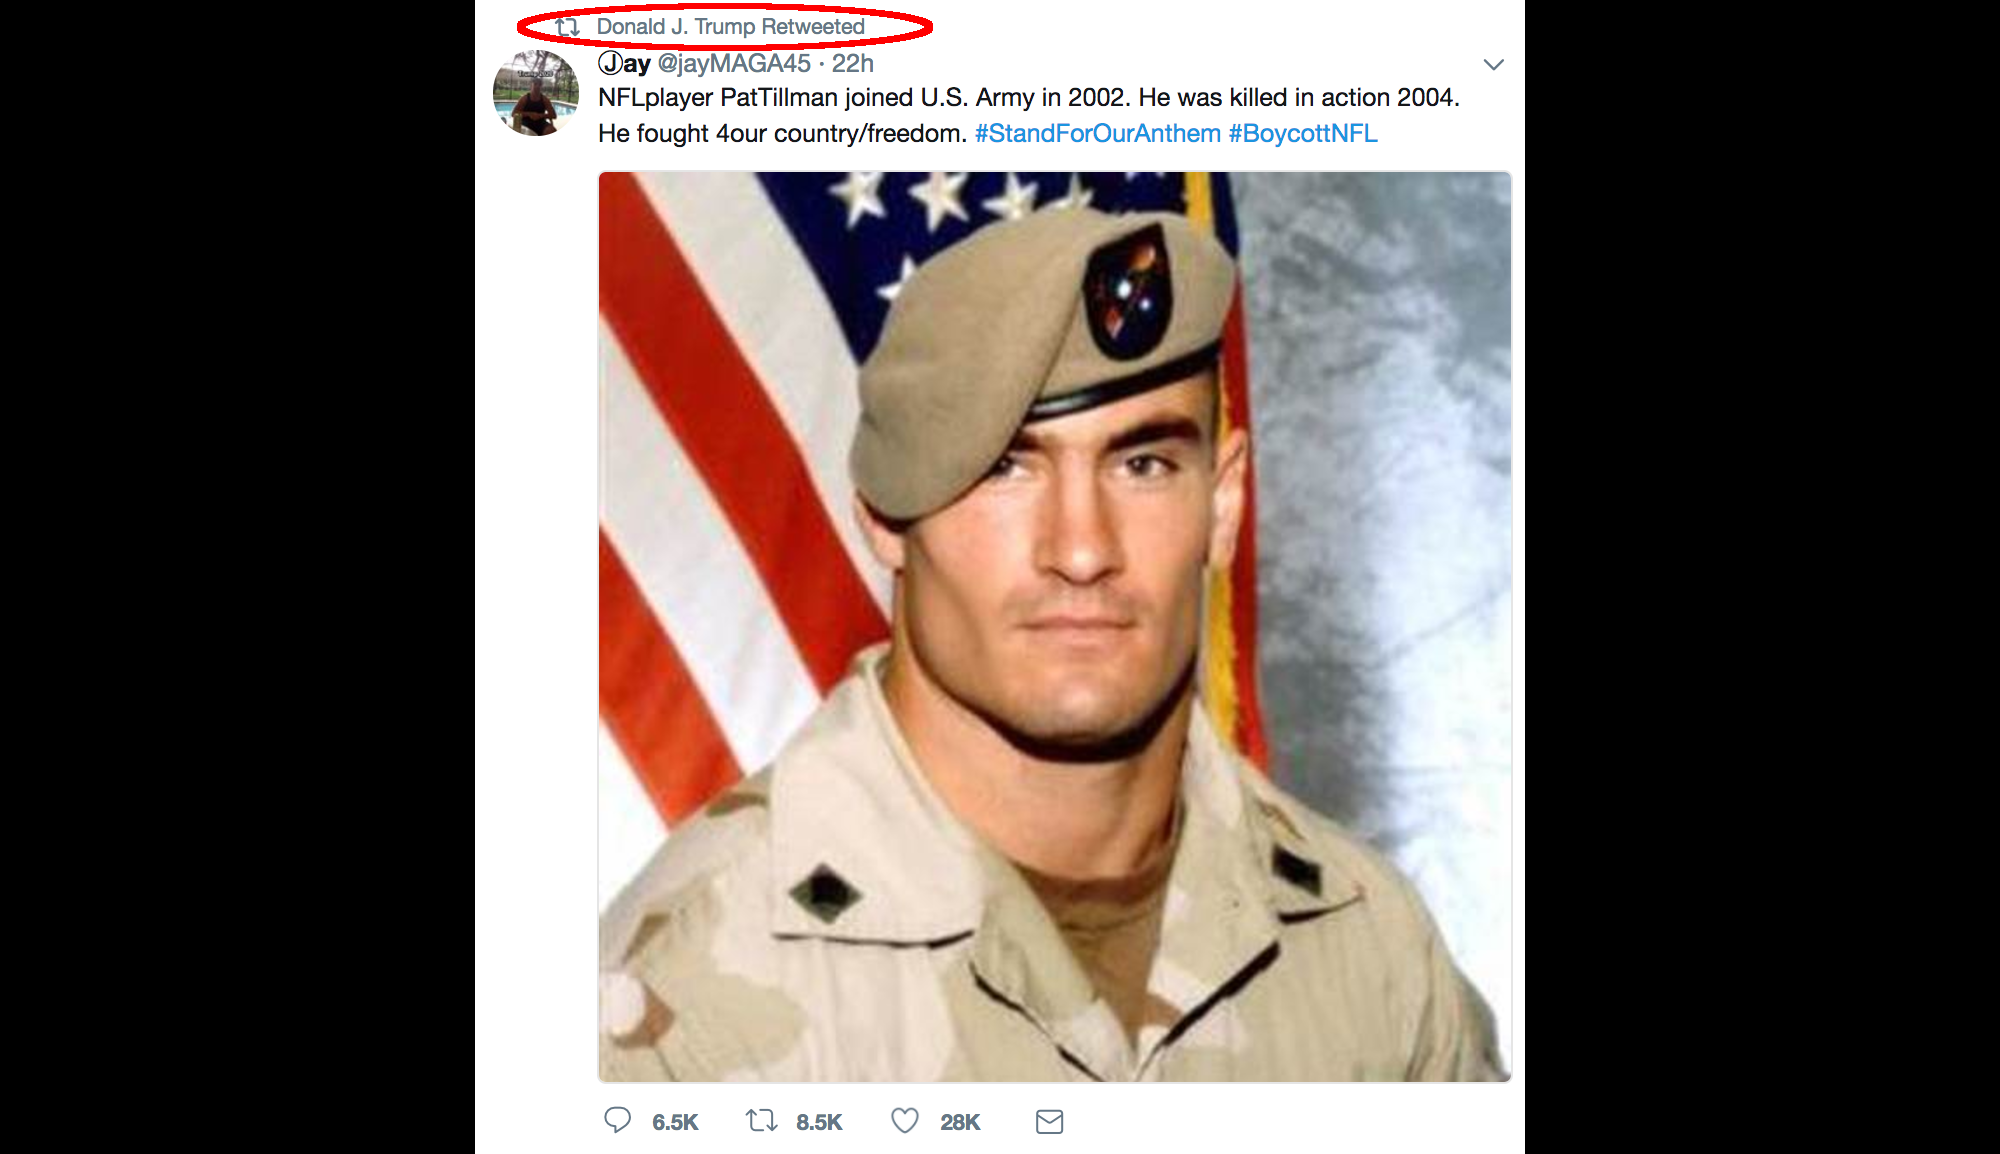 Pat Tillman's widow asks Trump not to politicize her husband's service